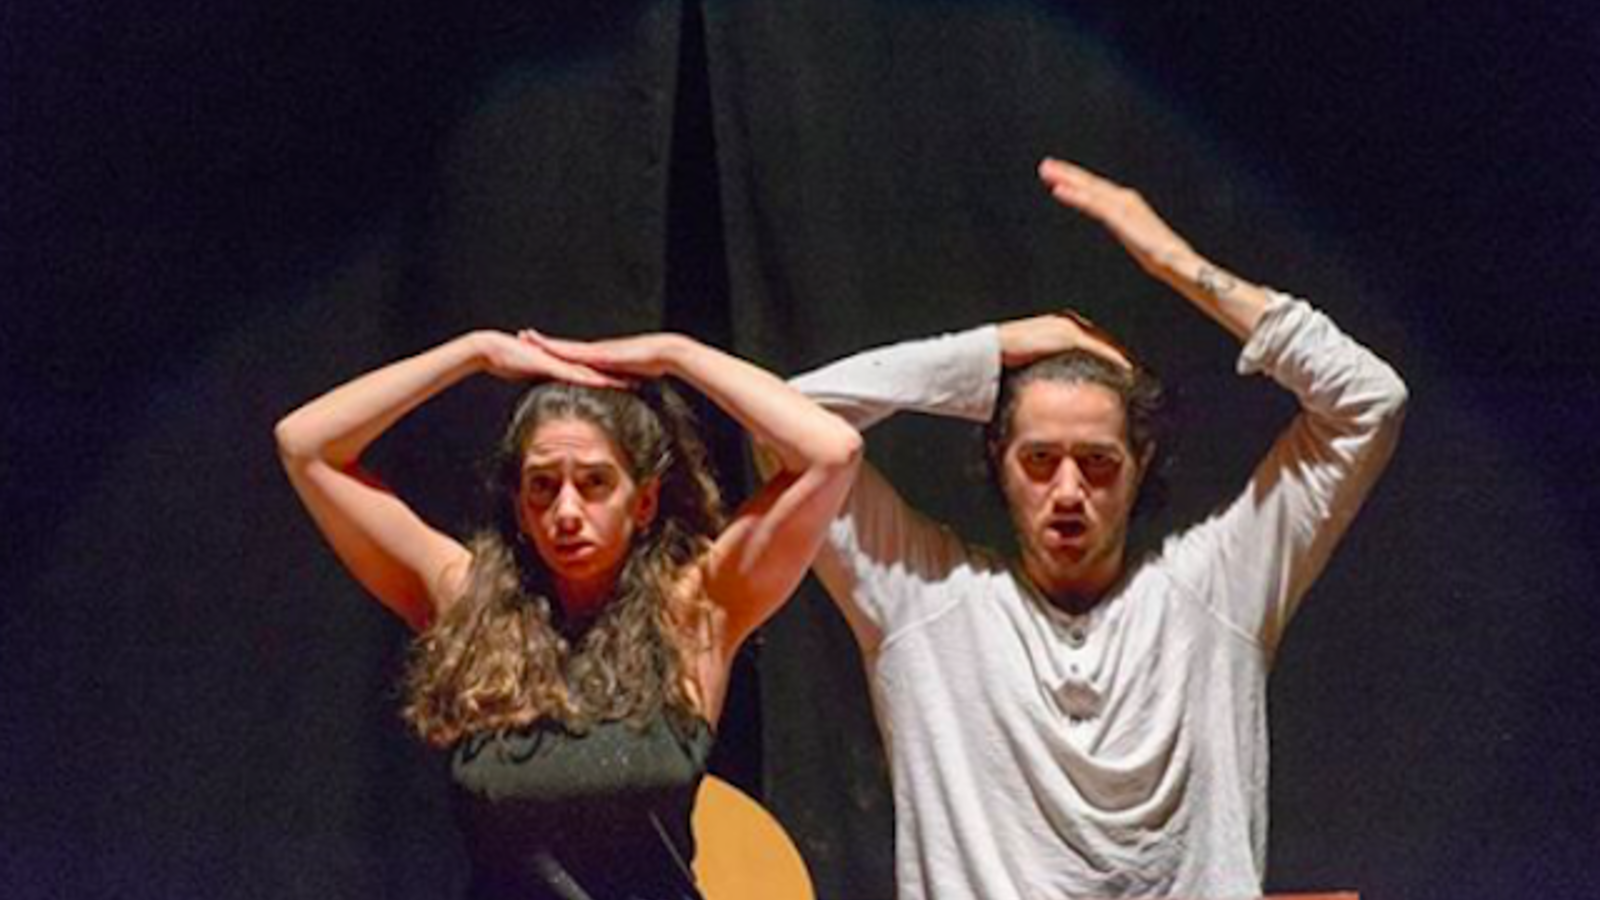 The third edition of Cairo Contemporary Dance Center's dance festival will mark Ahmed Malek's first live stage performance